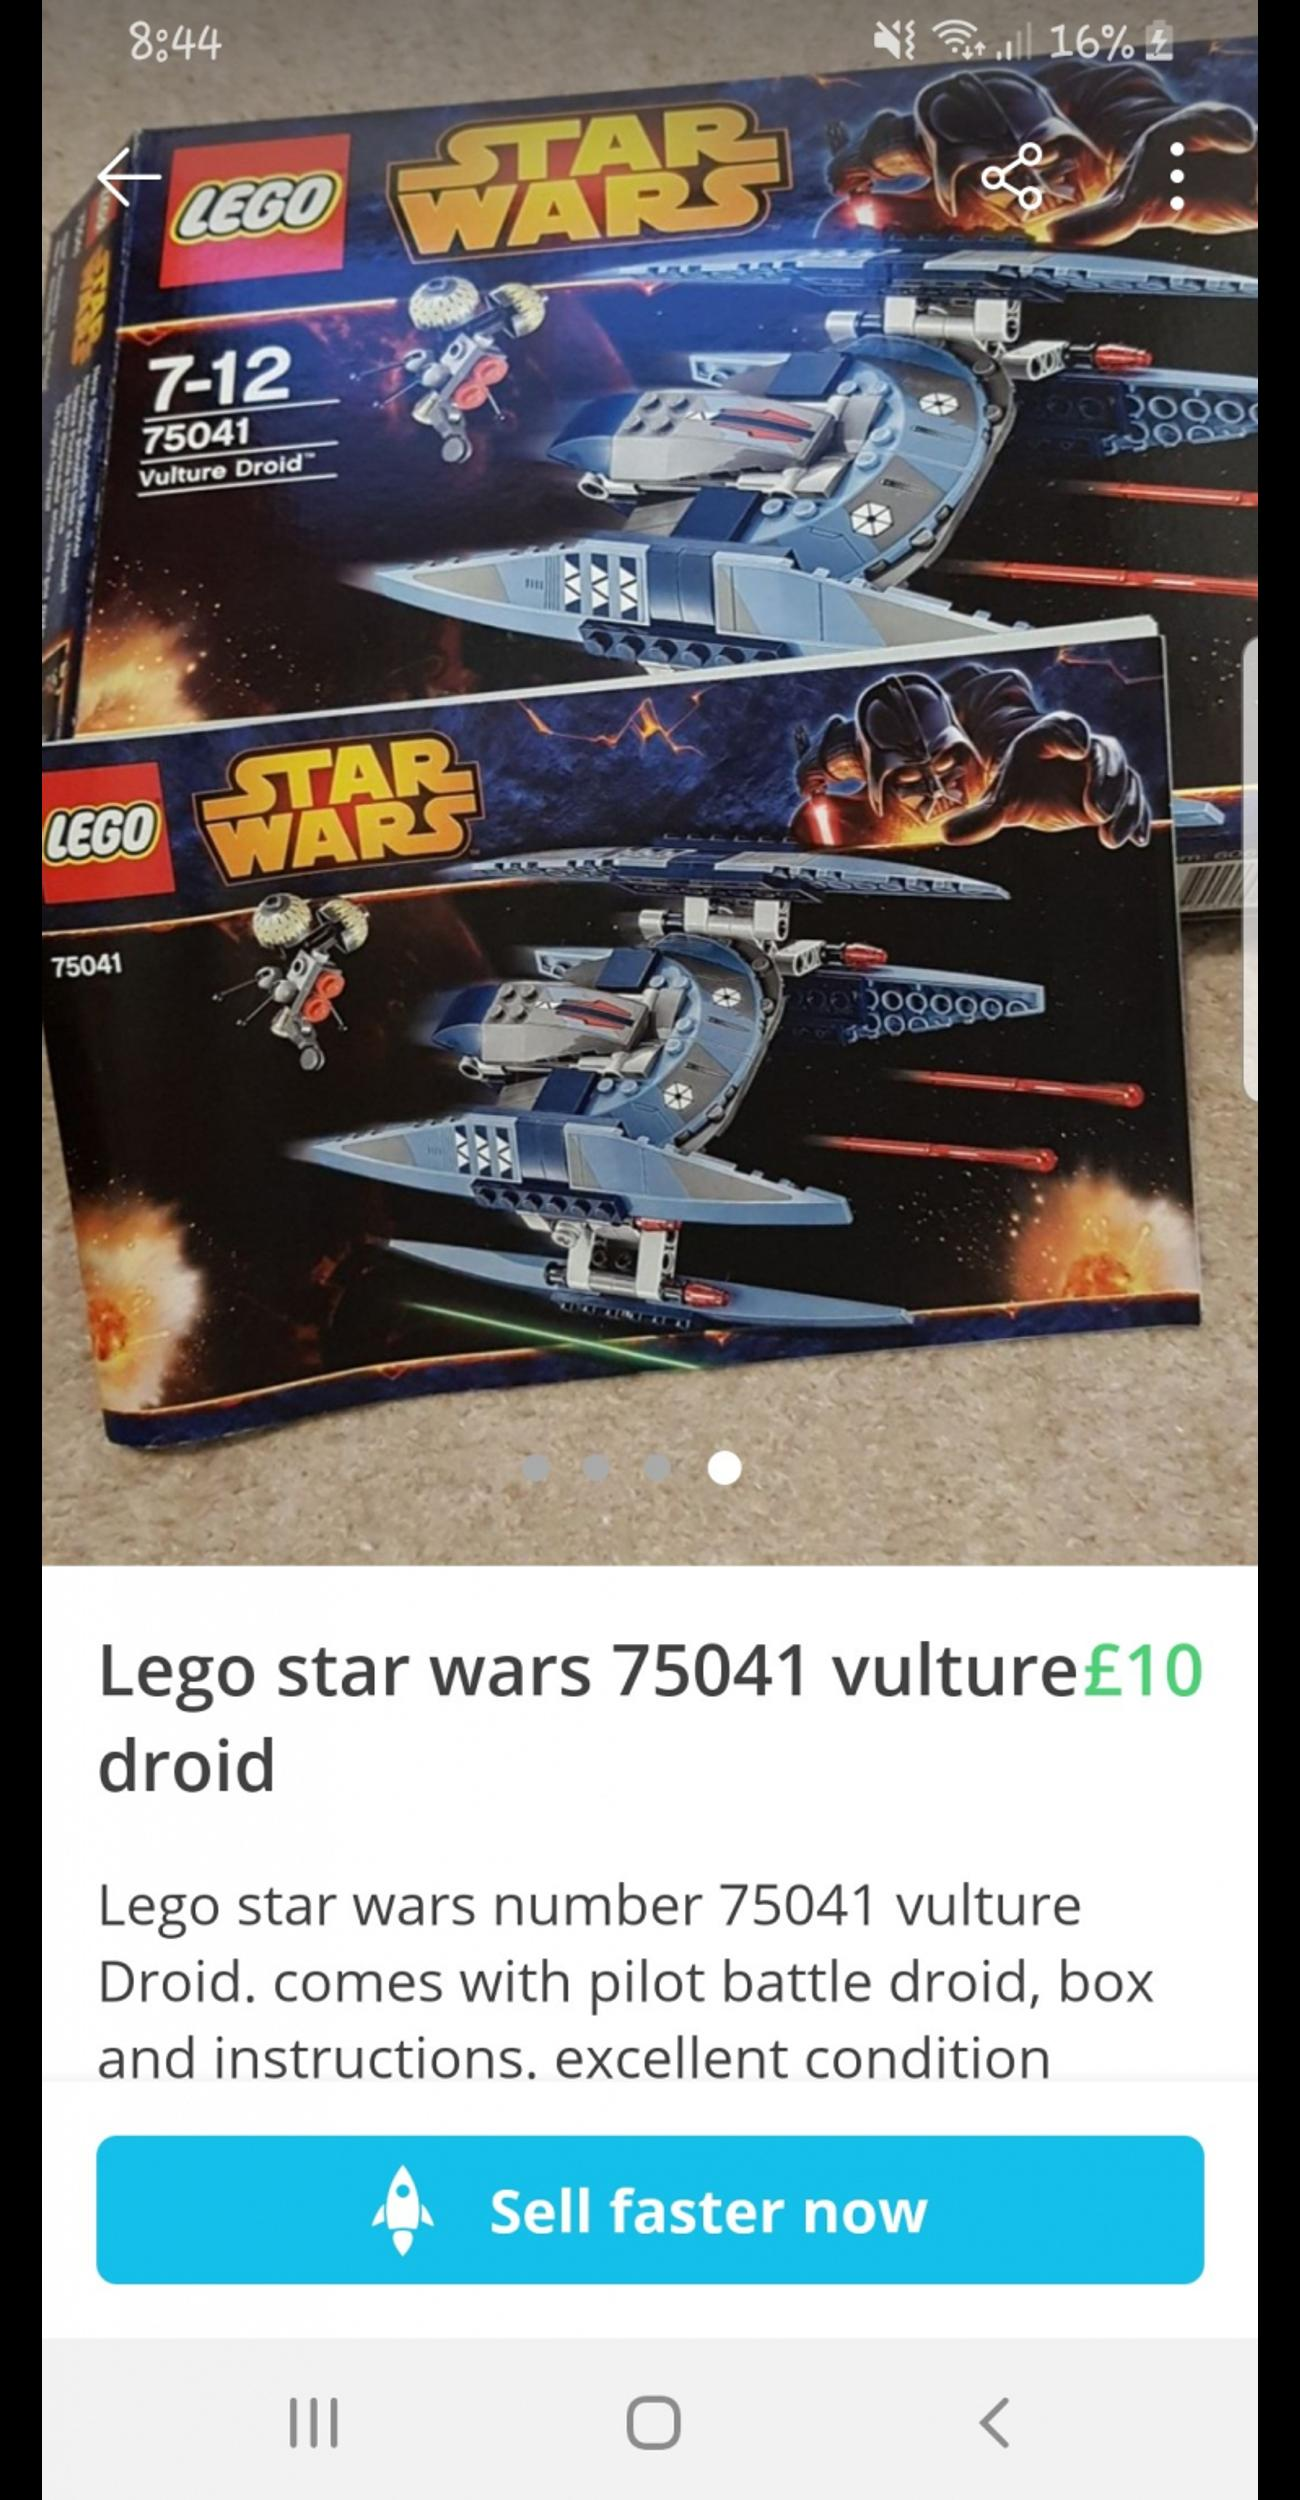 star wars Lego vulture droid in S44 Bolsover for £10 00 for sale